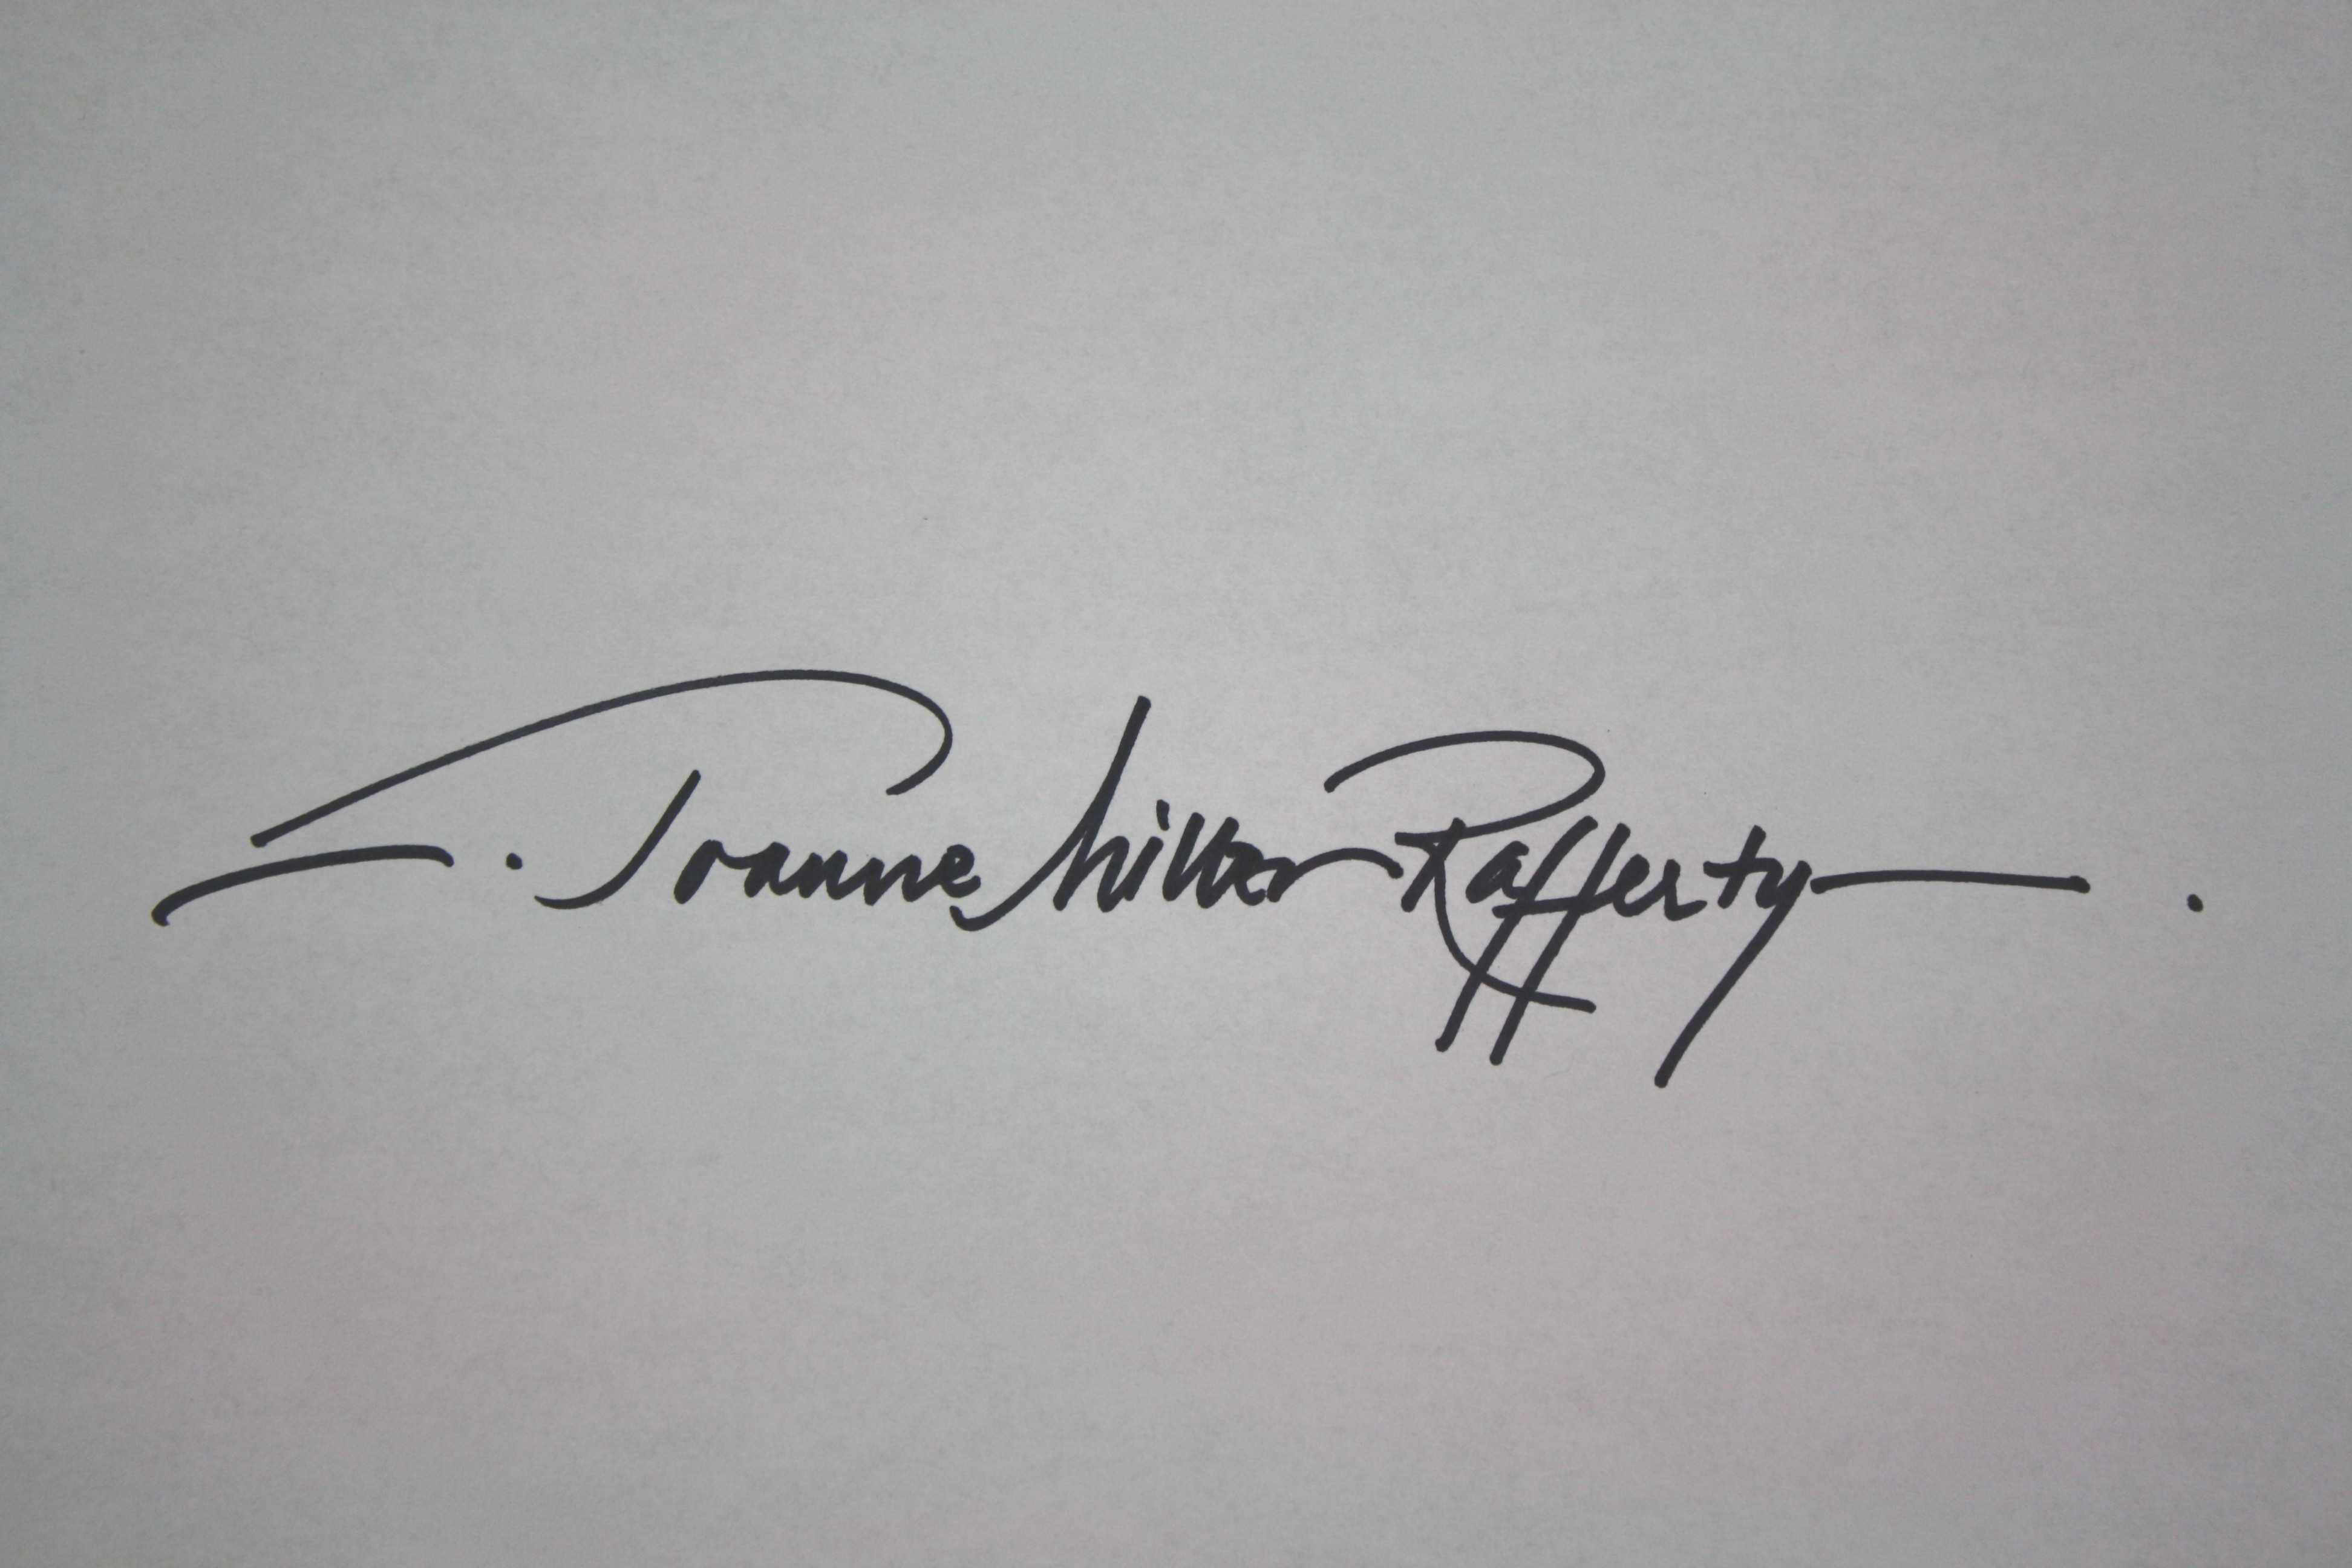 Joanne Miller Rafferty's Signature